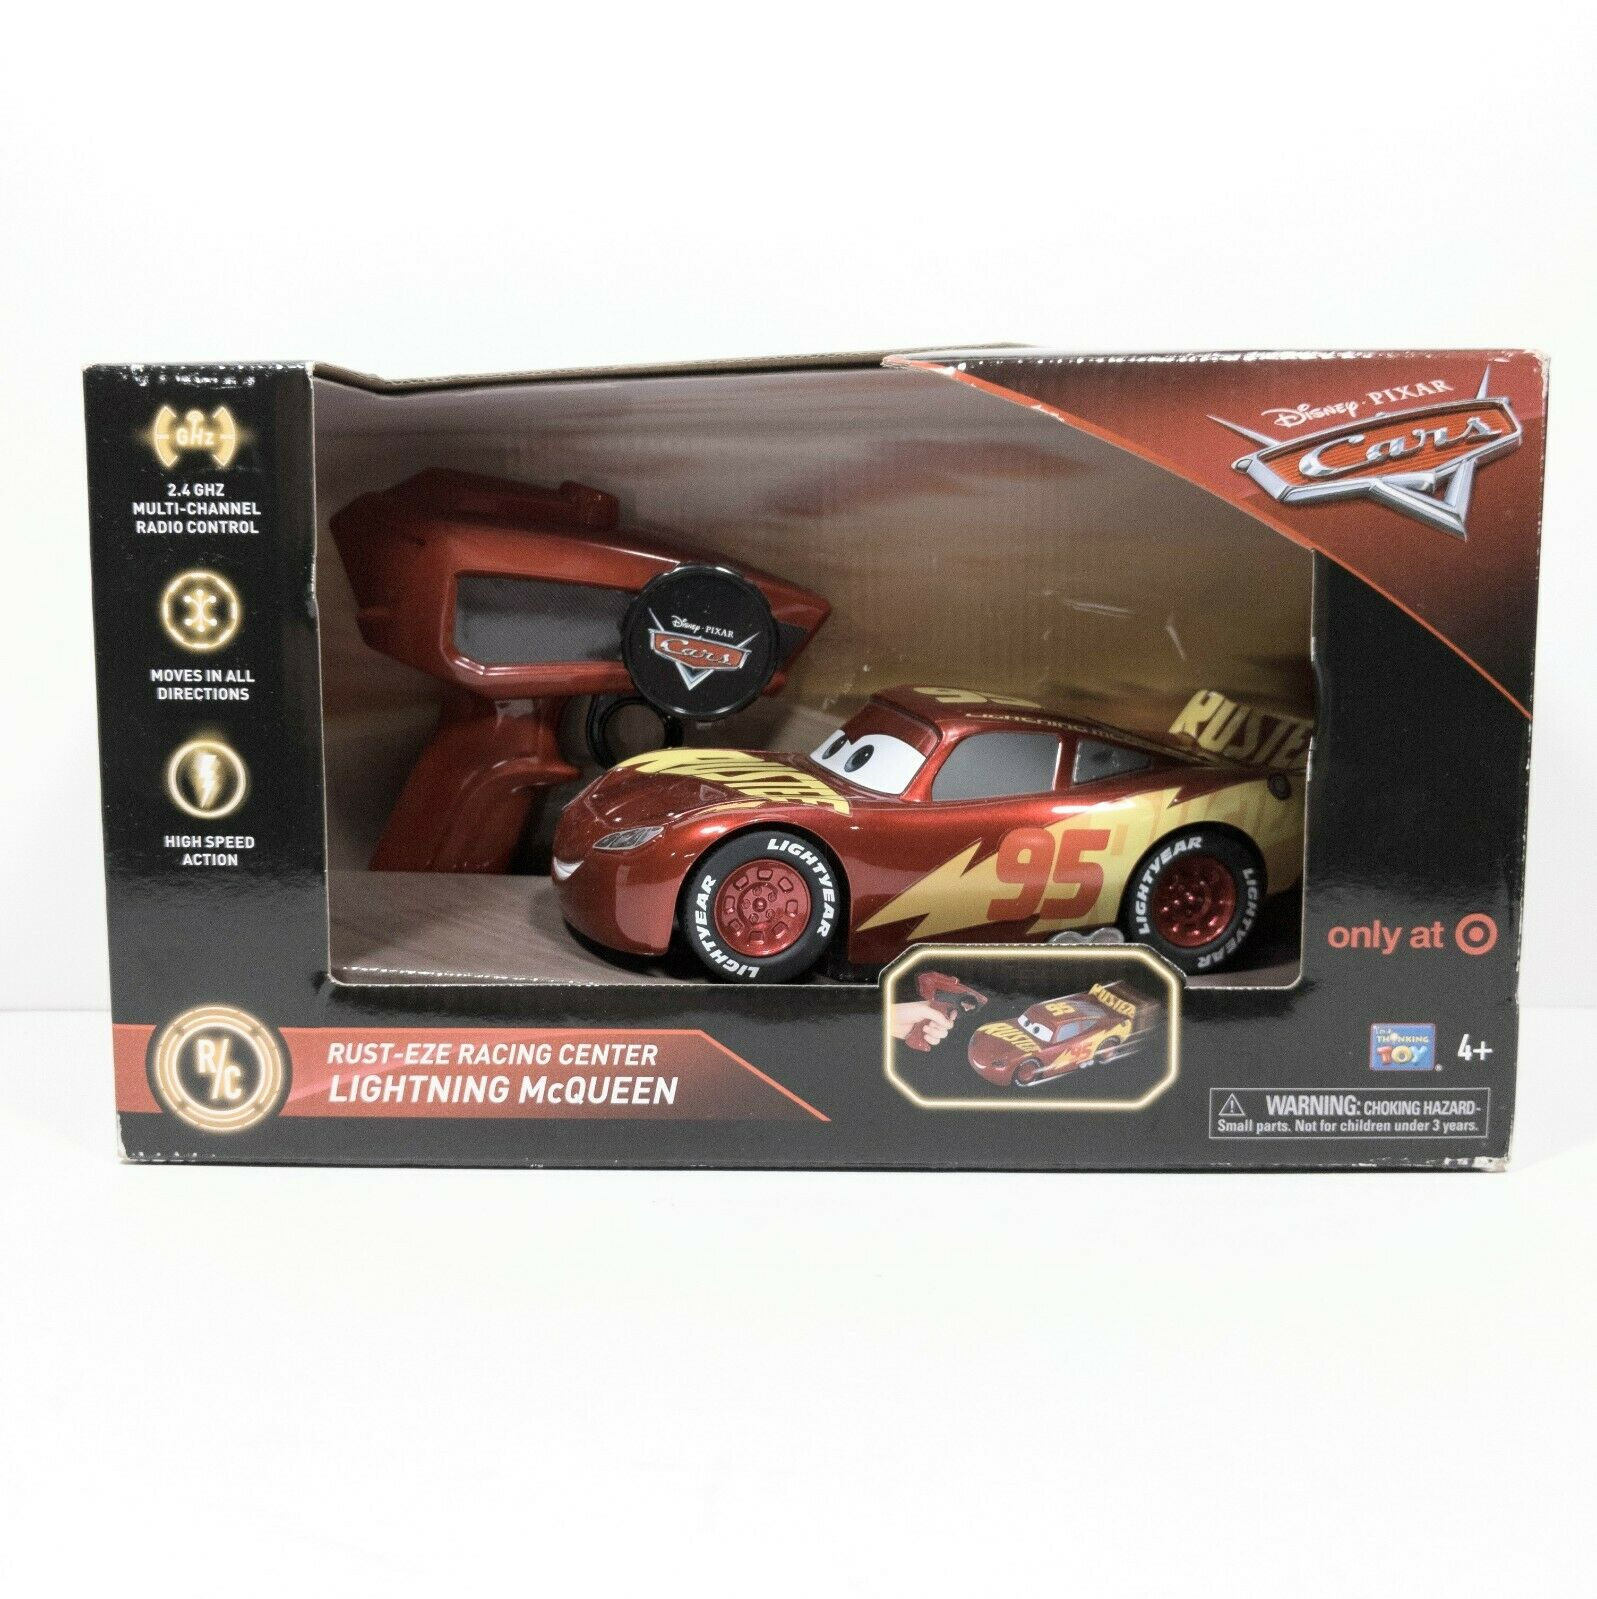 New Disney Pixar Cars 3 Rust Eze Racing Center Lightning Mcqueen